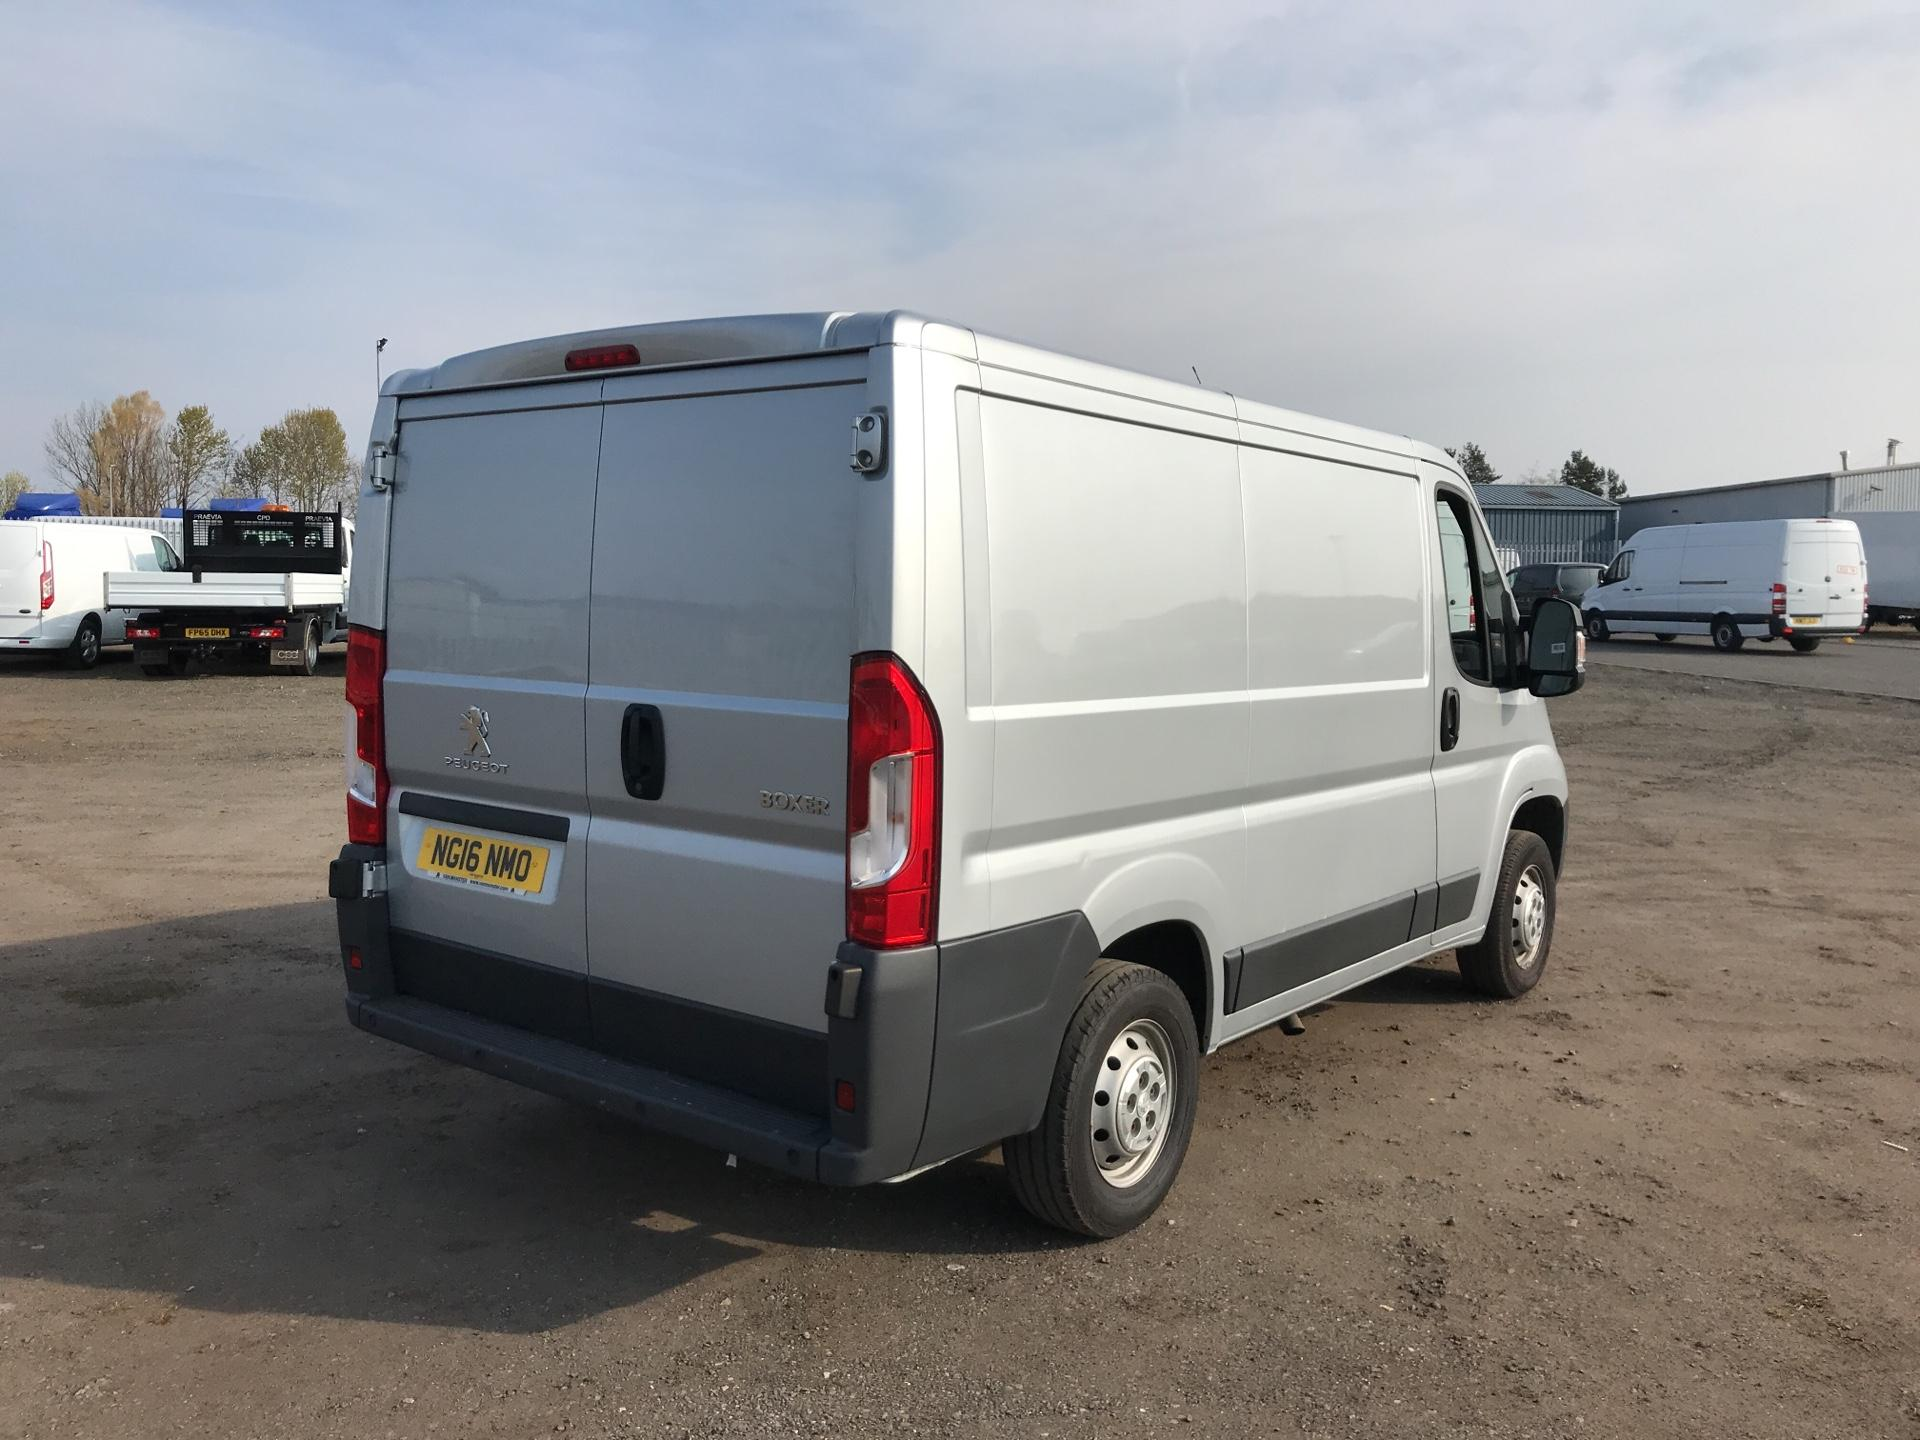 2016 Peugeot Boxer 2.0 Bluehdi H1  Professional Van 110Ps *VALUE RANGE VEHICLE CONDITION REFLECTED IN PRICE* (NG16NMO) Image 3